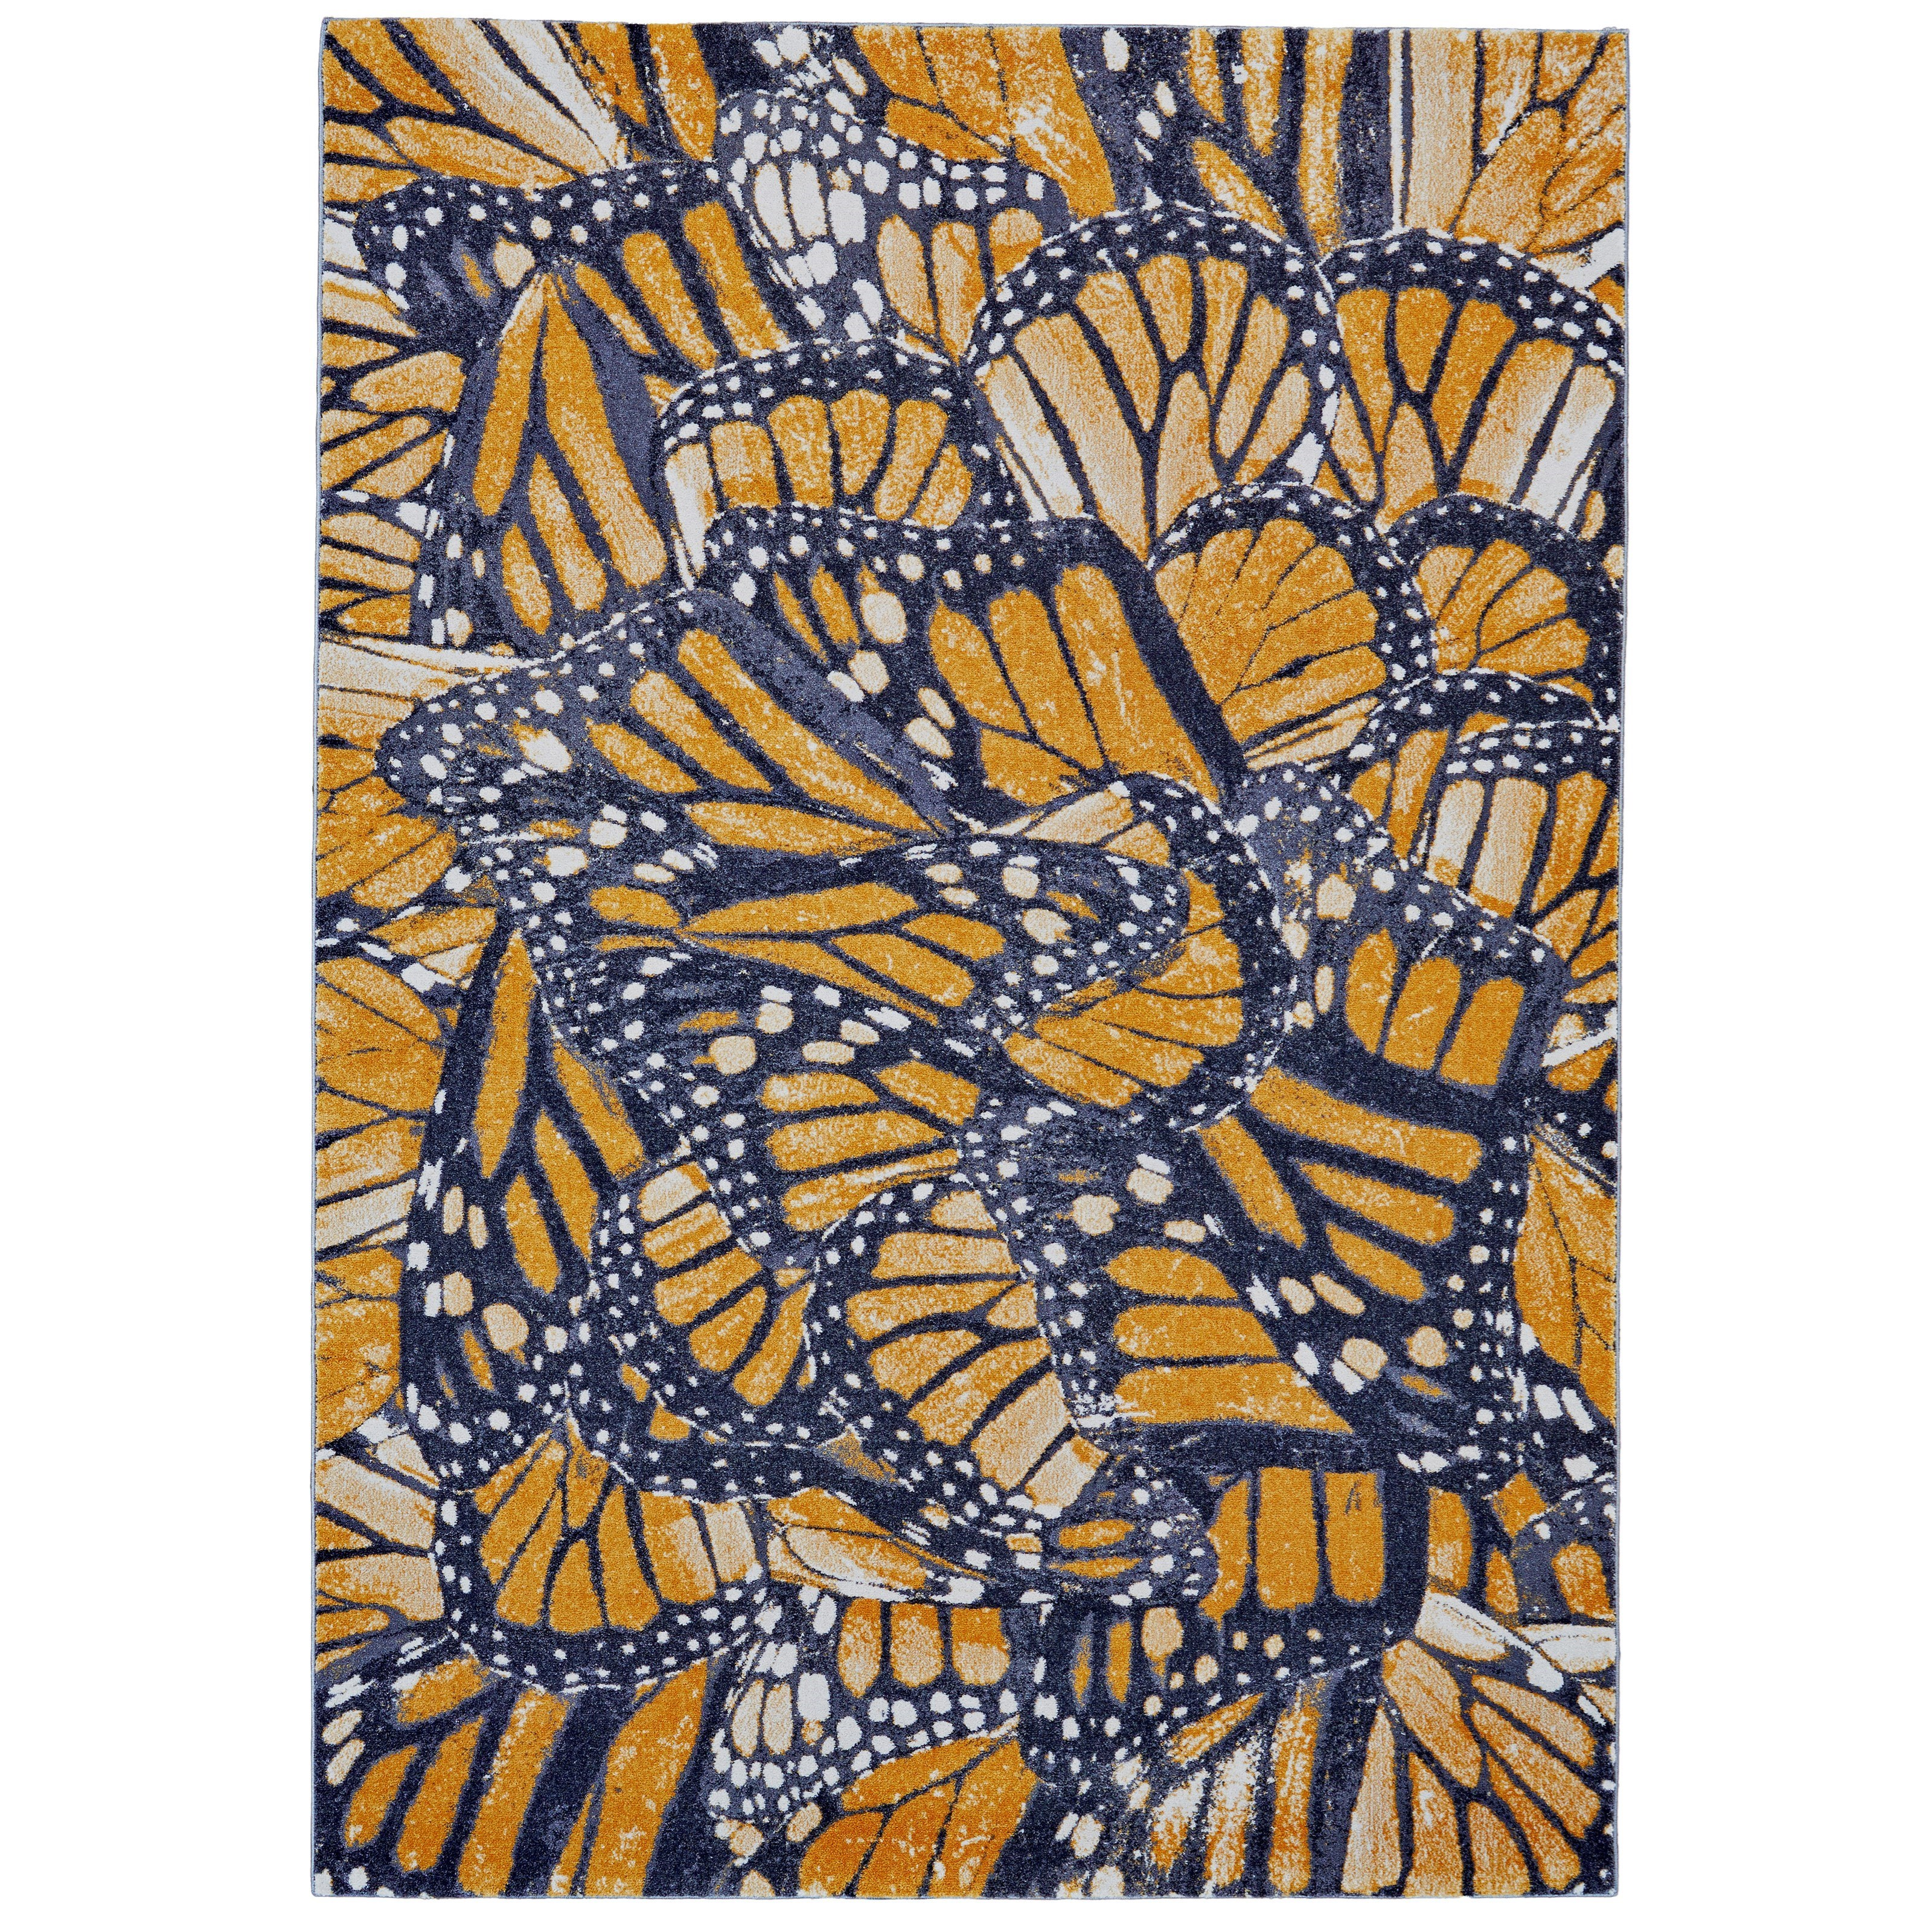 "Cambrian Cornflower 10' X 13'-2"" Area Rug by Feizy Rugs at Jacksonville Furniture Mart"